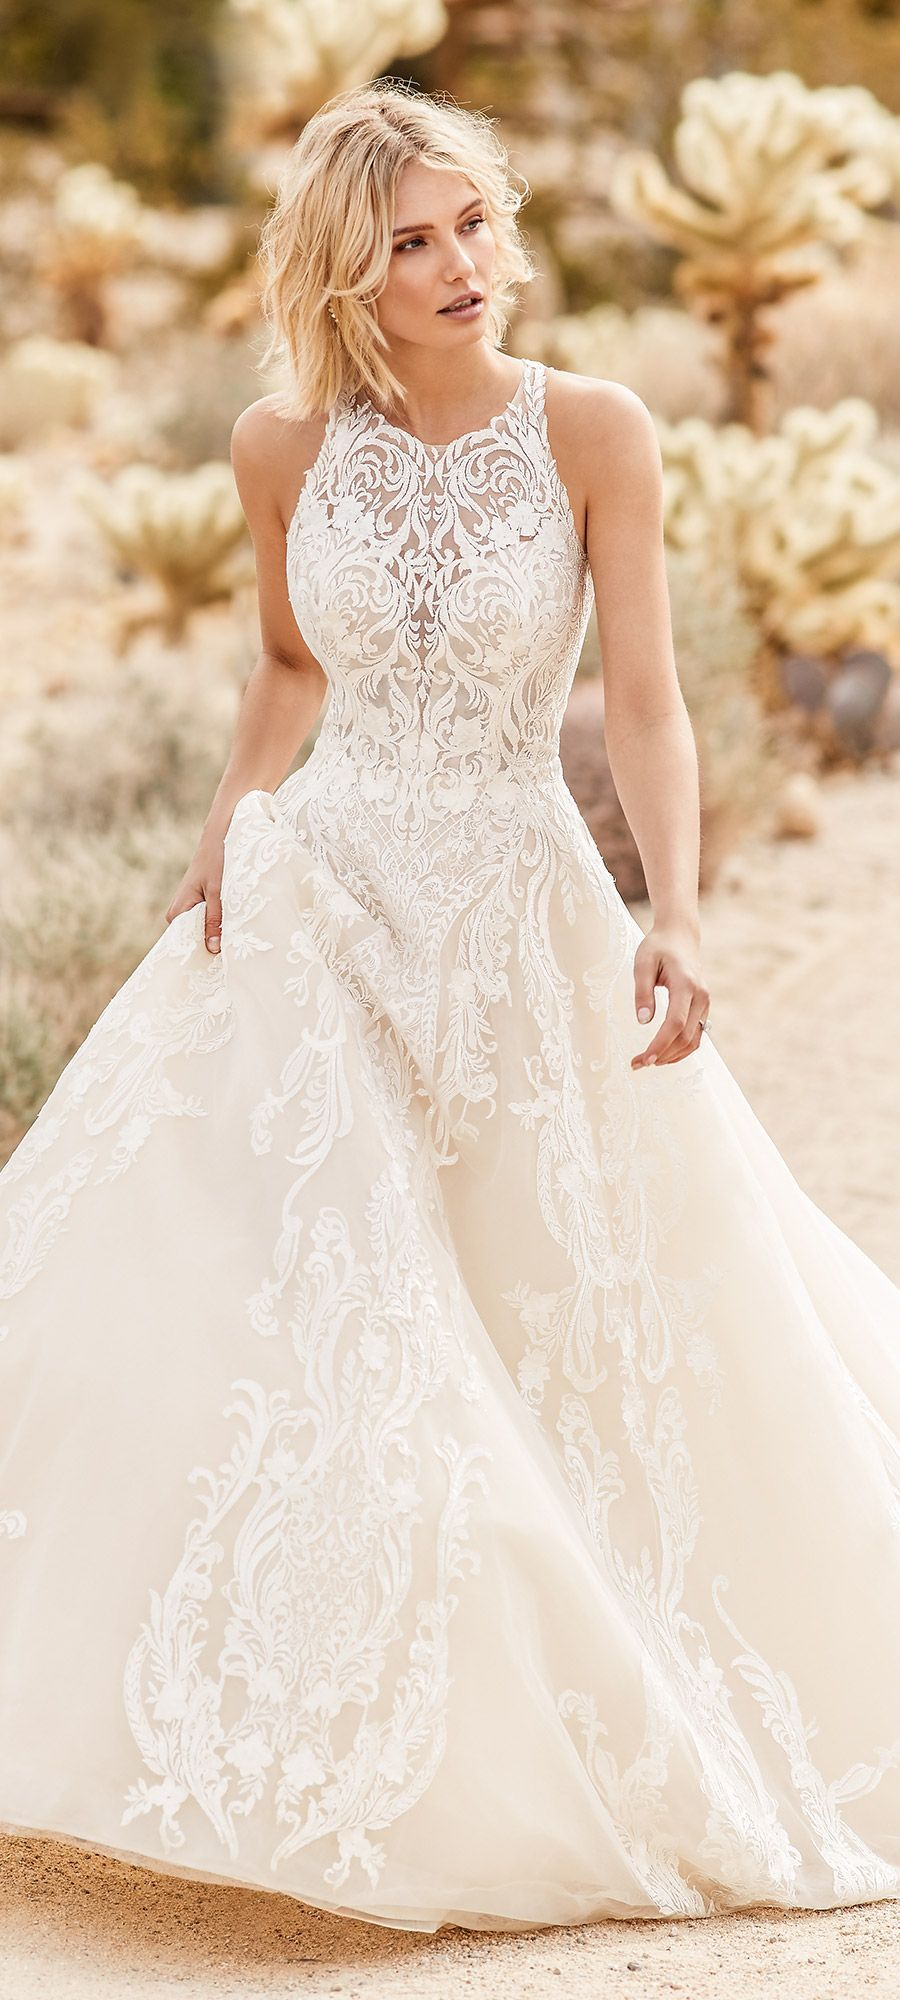 TOVAH by Sottero and Midgley Wedding Dresses